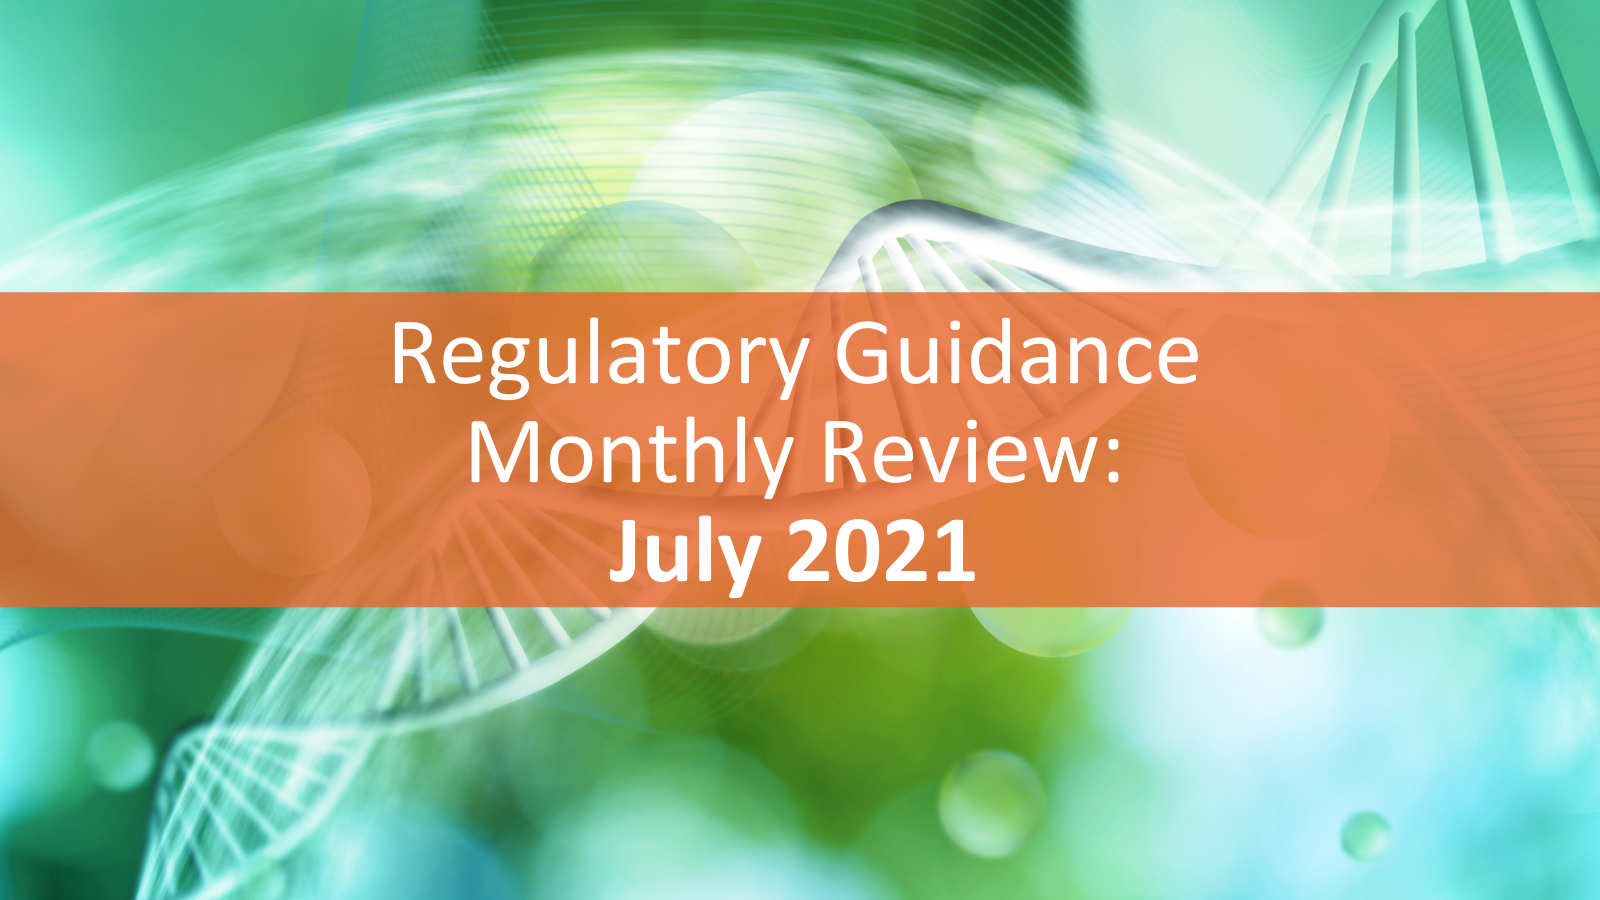 Regulatory Guidance Monthly Review - July 2021